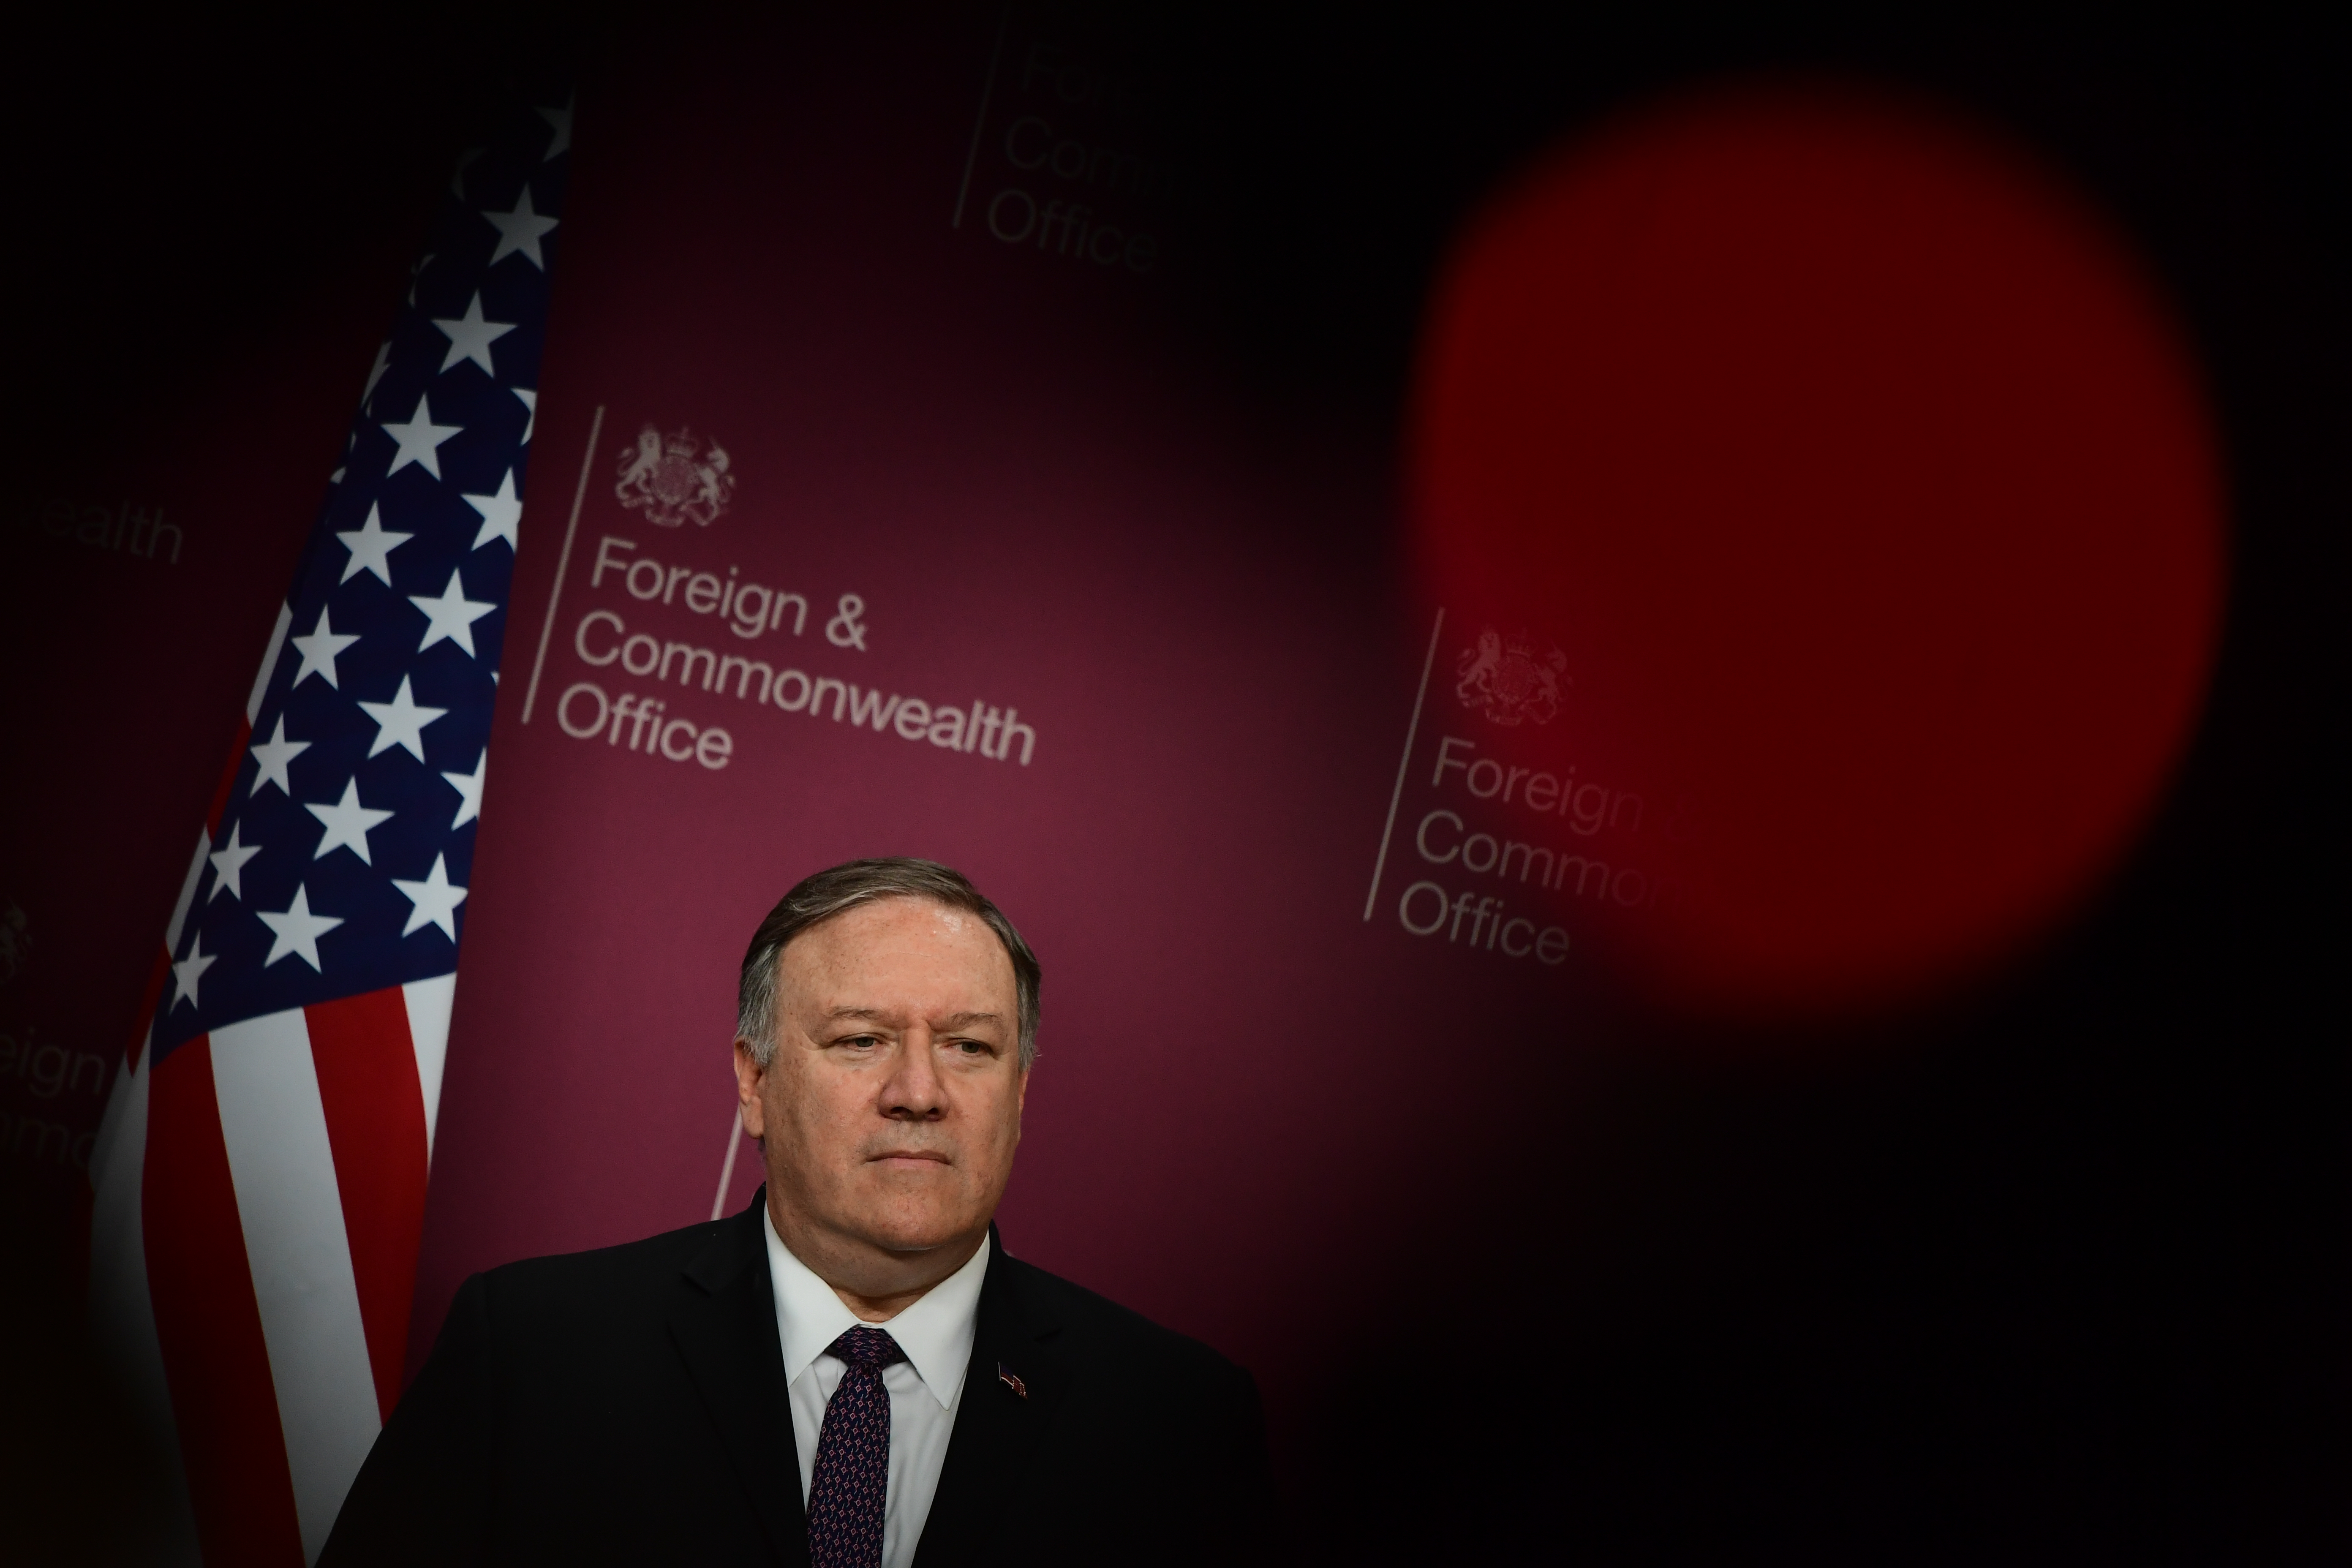 LONDON, ENGLAND - MAY 08:  US Secretary of State Mike Pompeo attends a joint press conference with Foreign Secretary Jeremy Hunt at Foreign & Commonwealth Office, on May 8, 2019 in London, England.